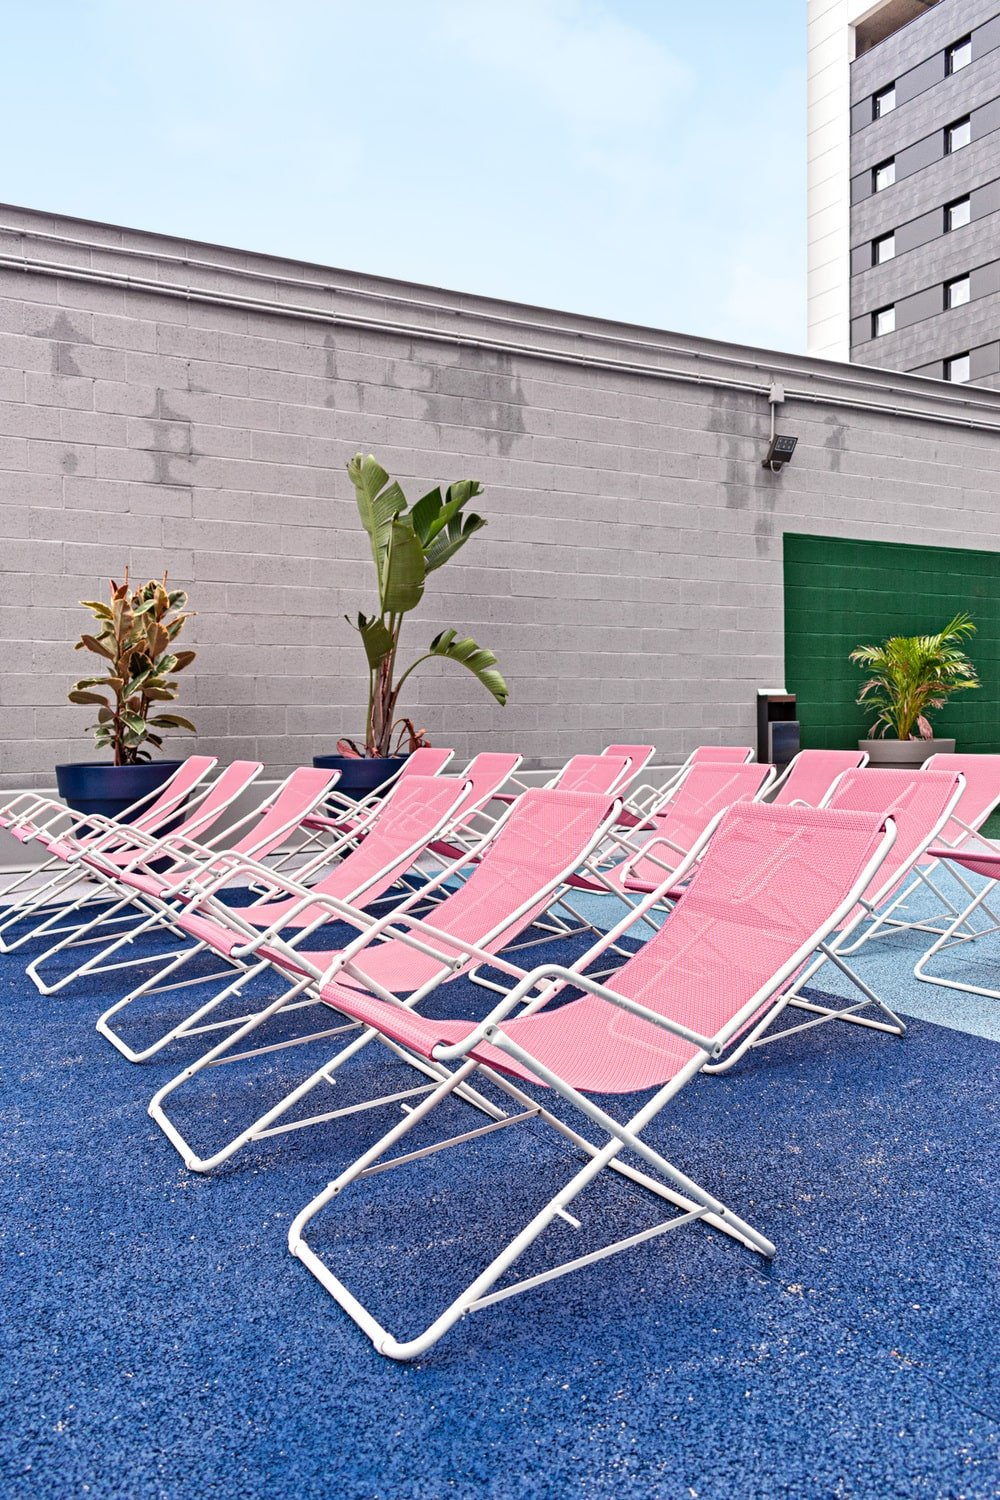 These lounge chairs are adorned with a row of potted plants on the side of the exterior wall.